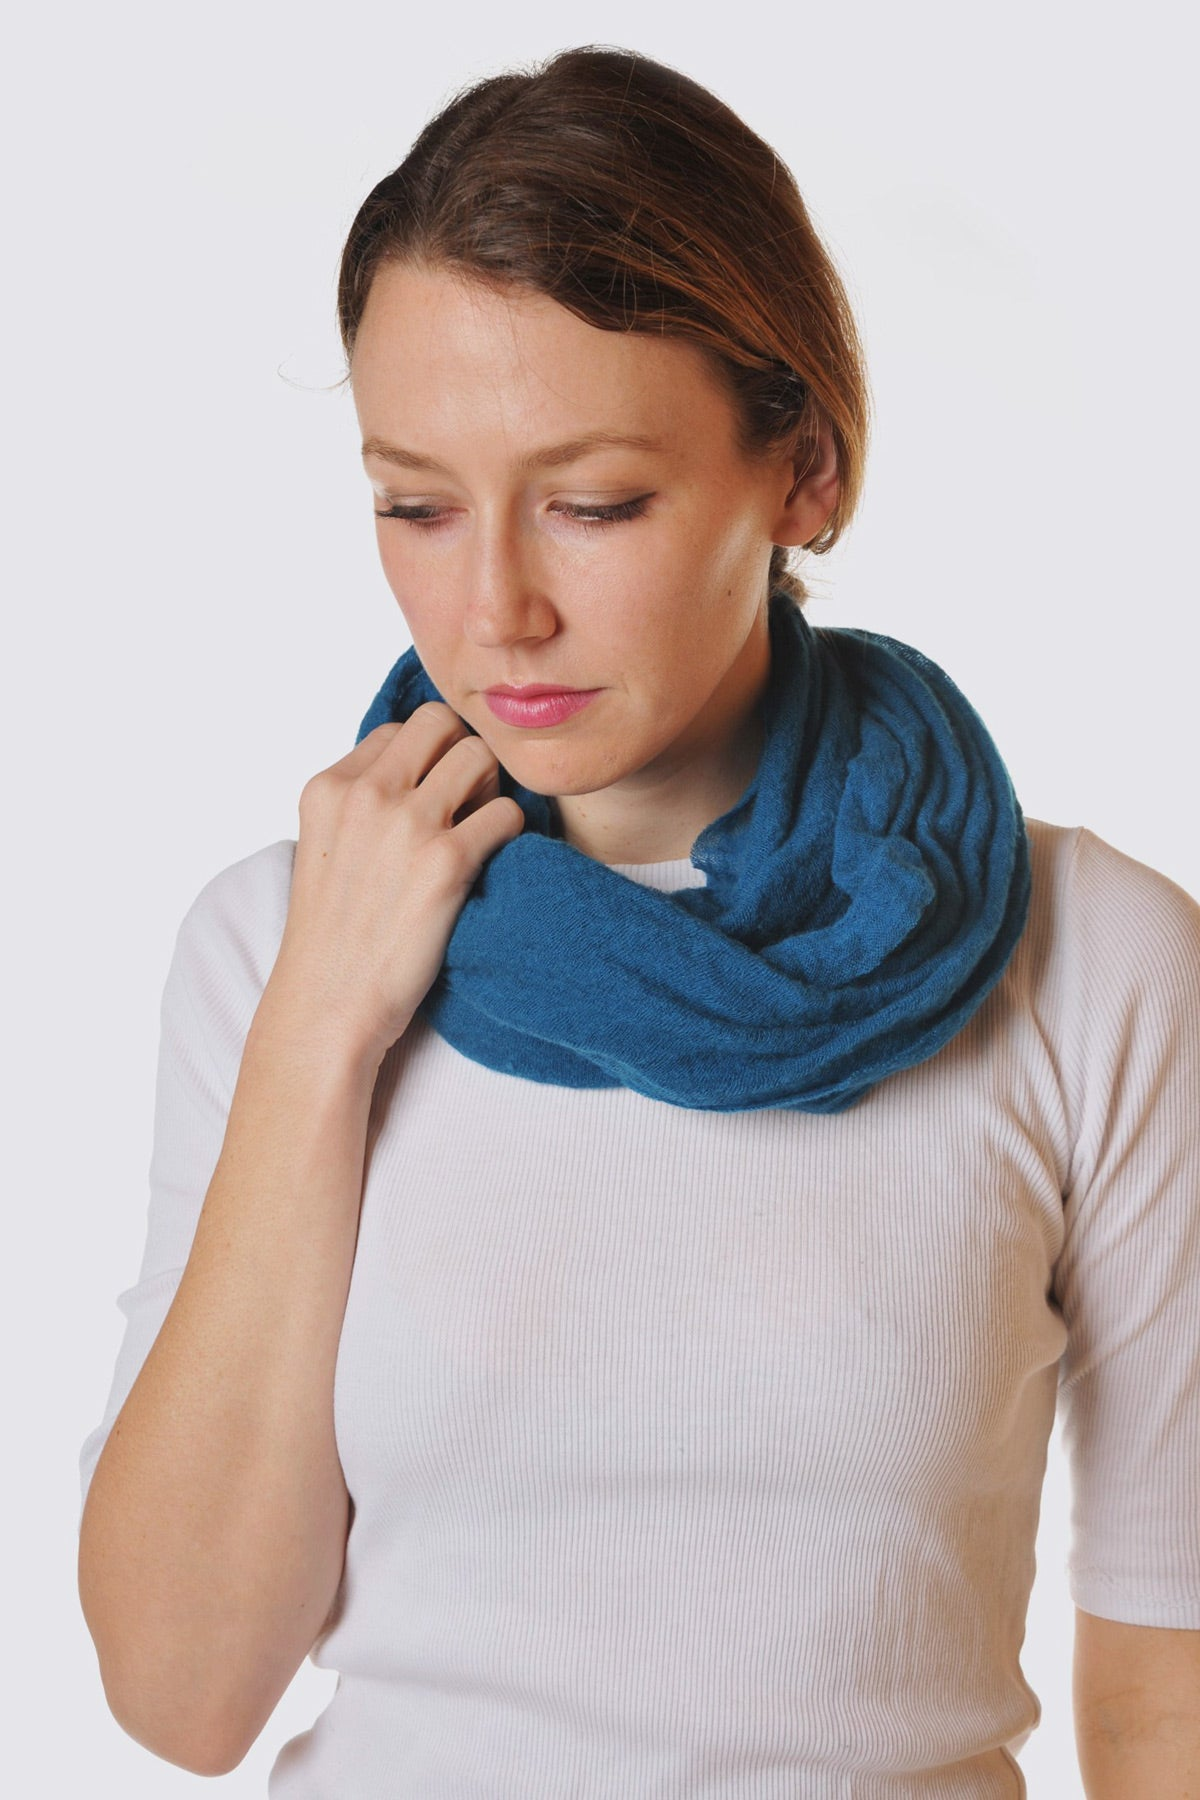 Teal Cashmere Tube Scarf by Botto Giuseppe